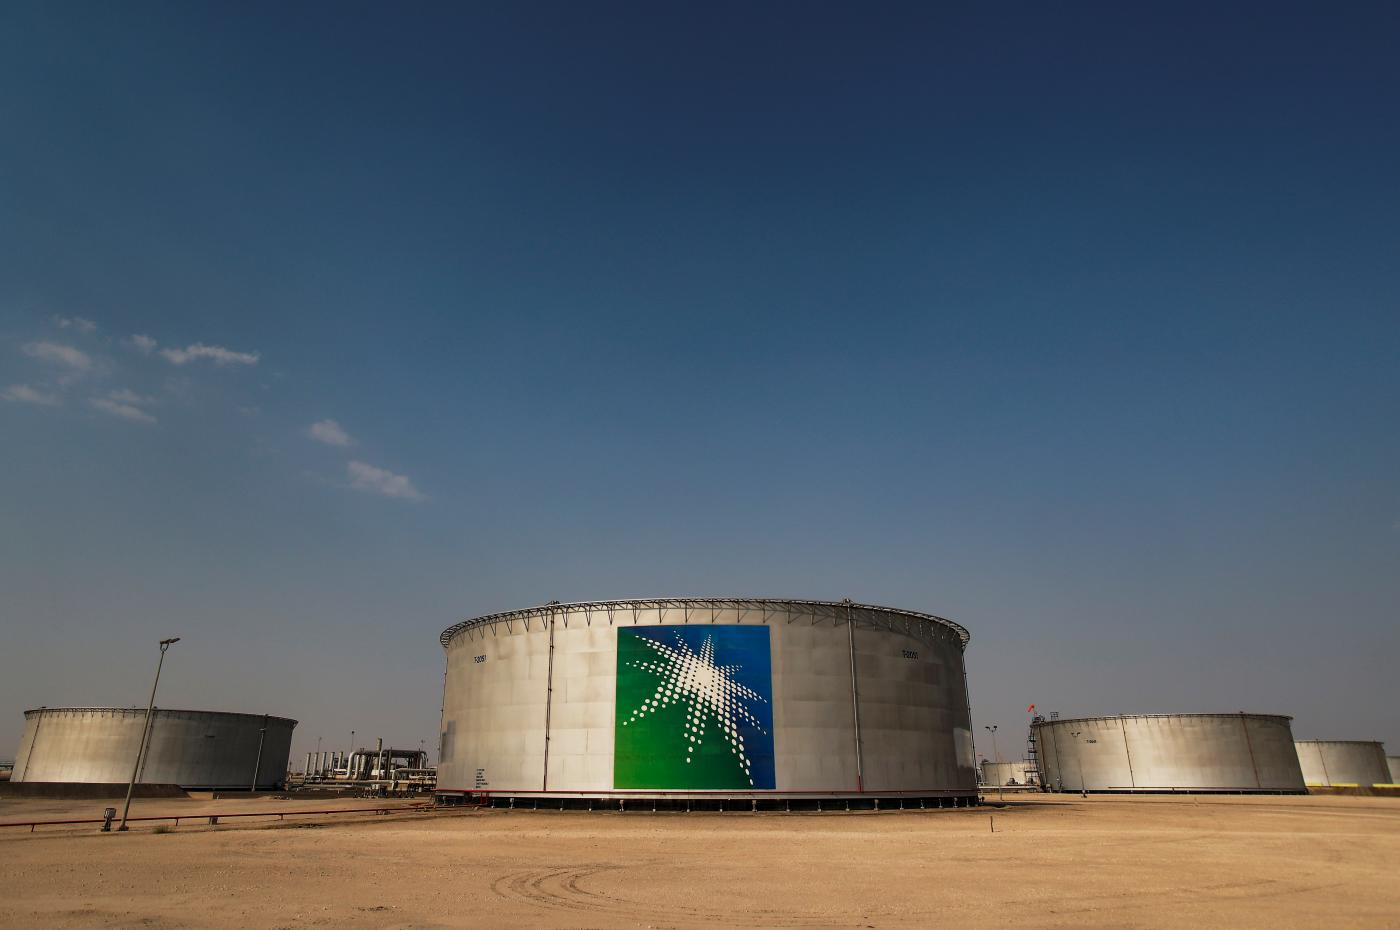 Saudi adopts 'shock and awe' tactics against rivals in the oil market